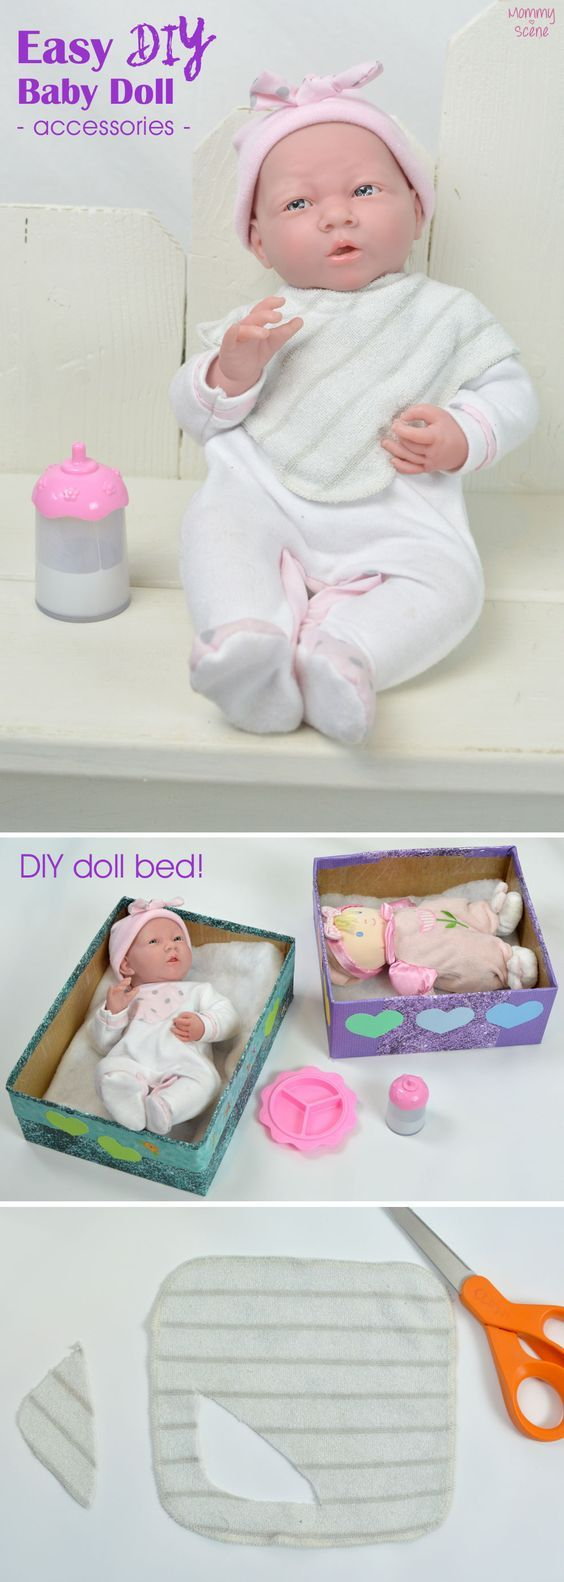 Easy no-sew baby doll bibs and DIY doll bed - Mommy Scene